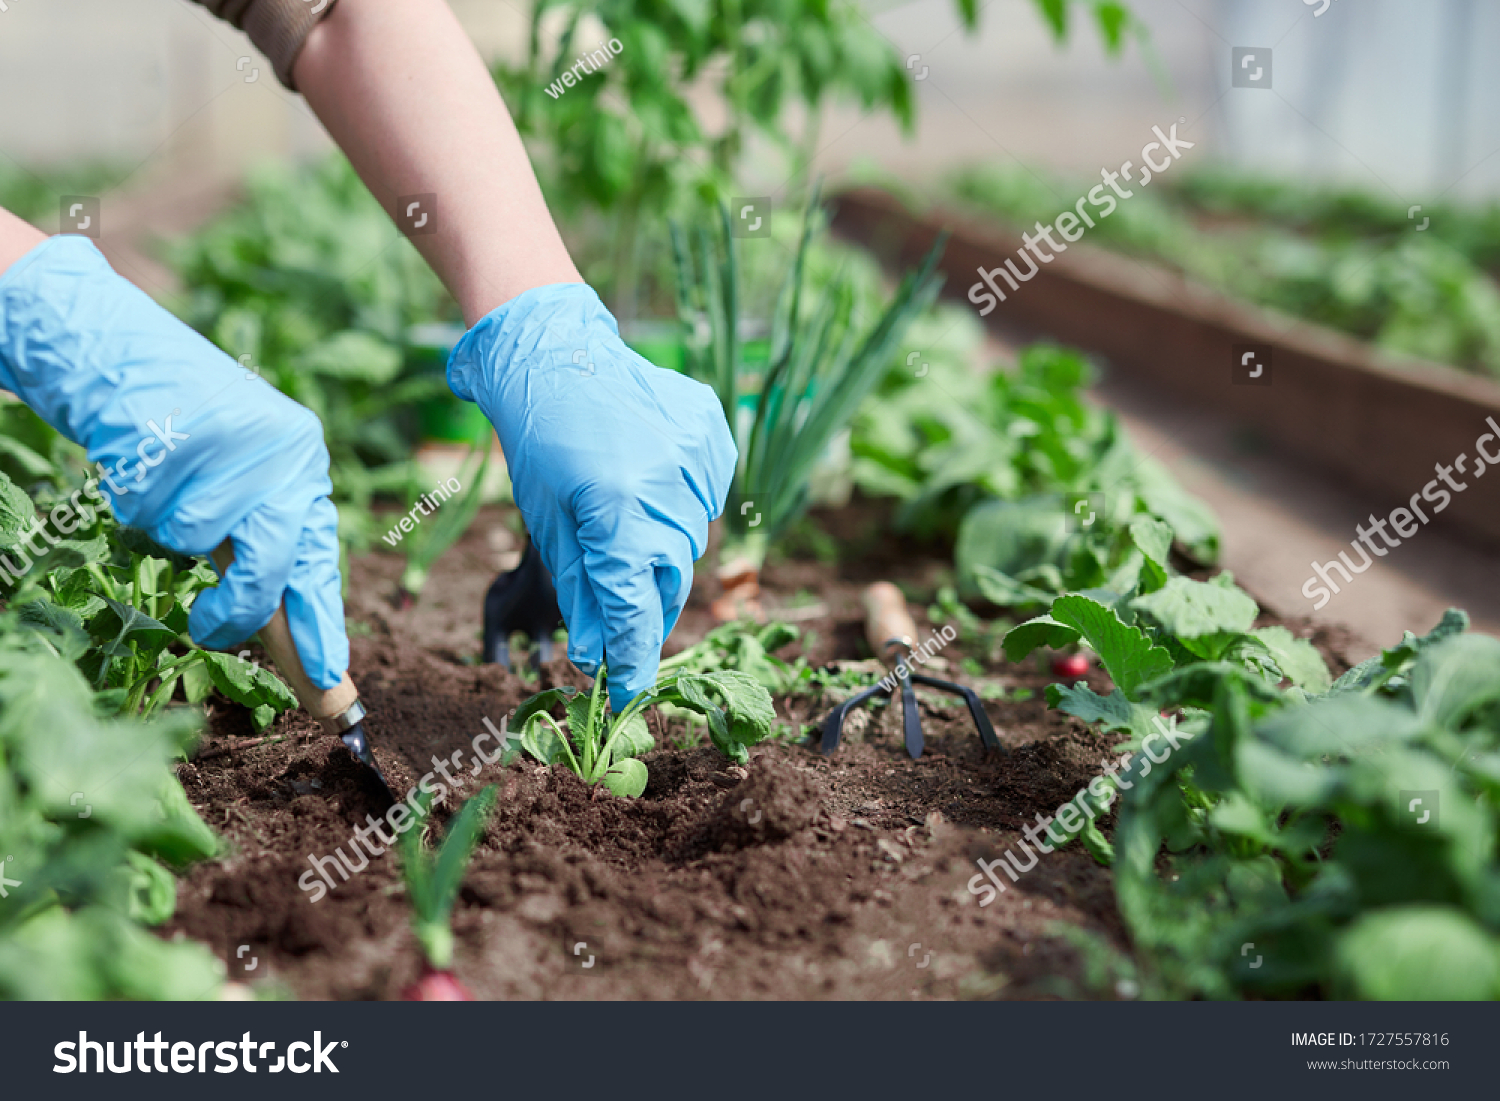 Gardeners hands planting and picking vegetable from backyard garden. Gardener in gloves prepares the soil for seedling.